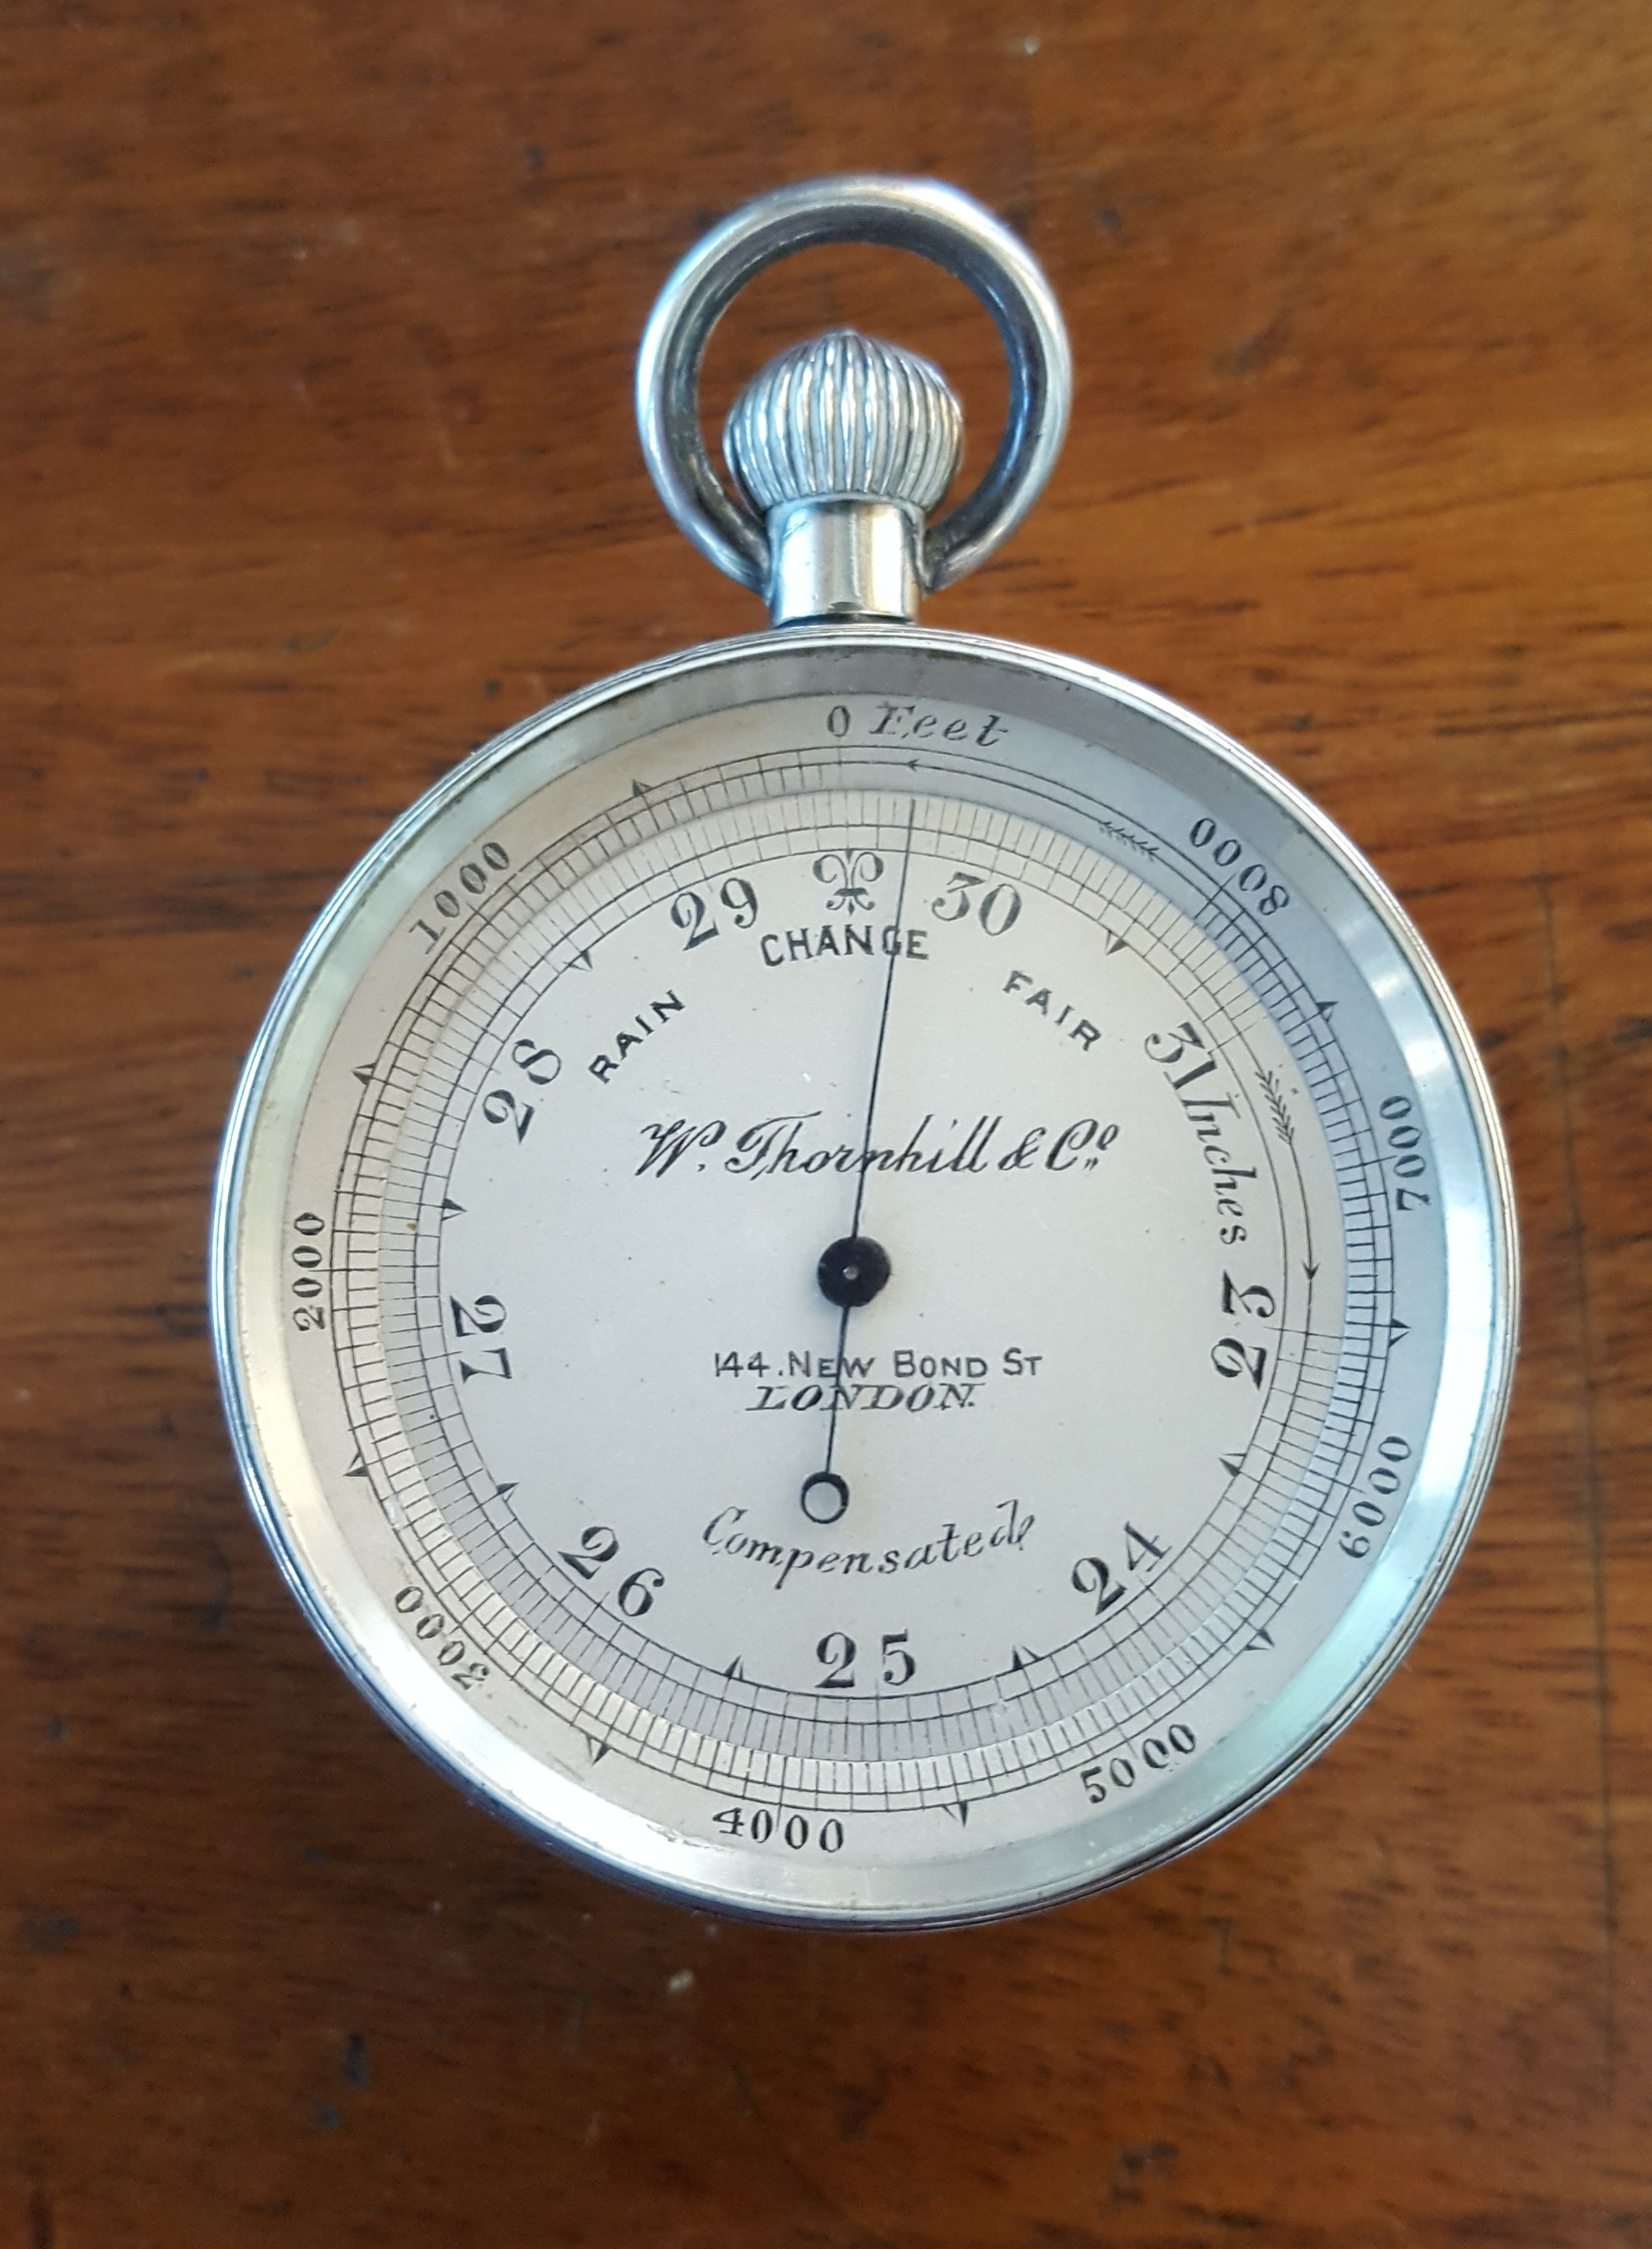 Antique Sterling Silver W Thornhill & Co. Compensated Pocket Barometer with Compass